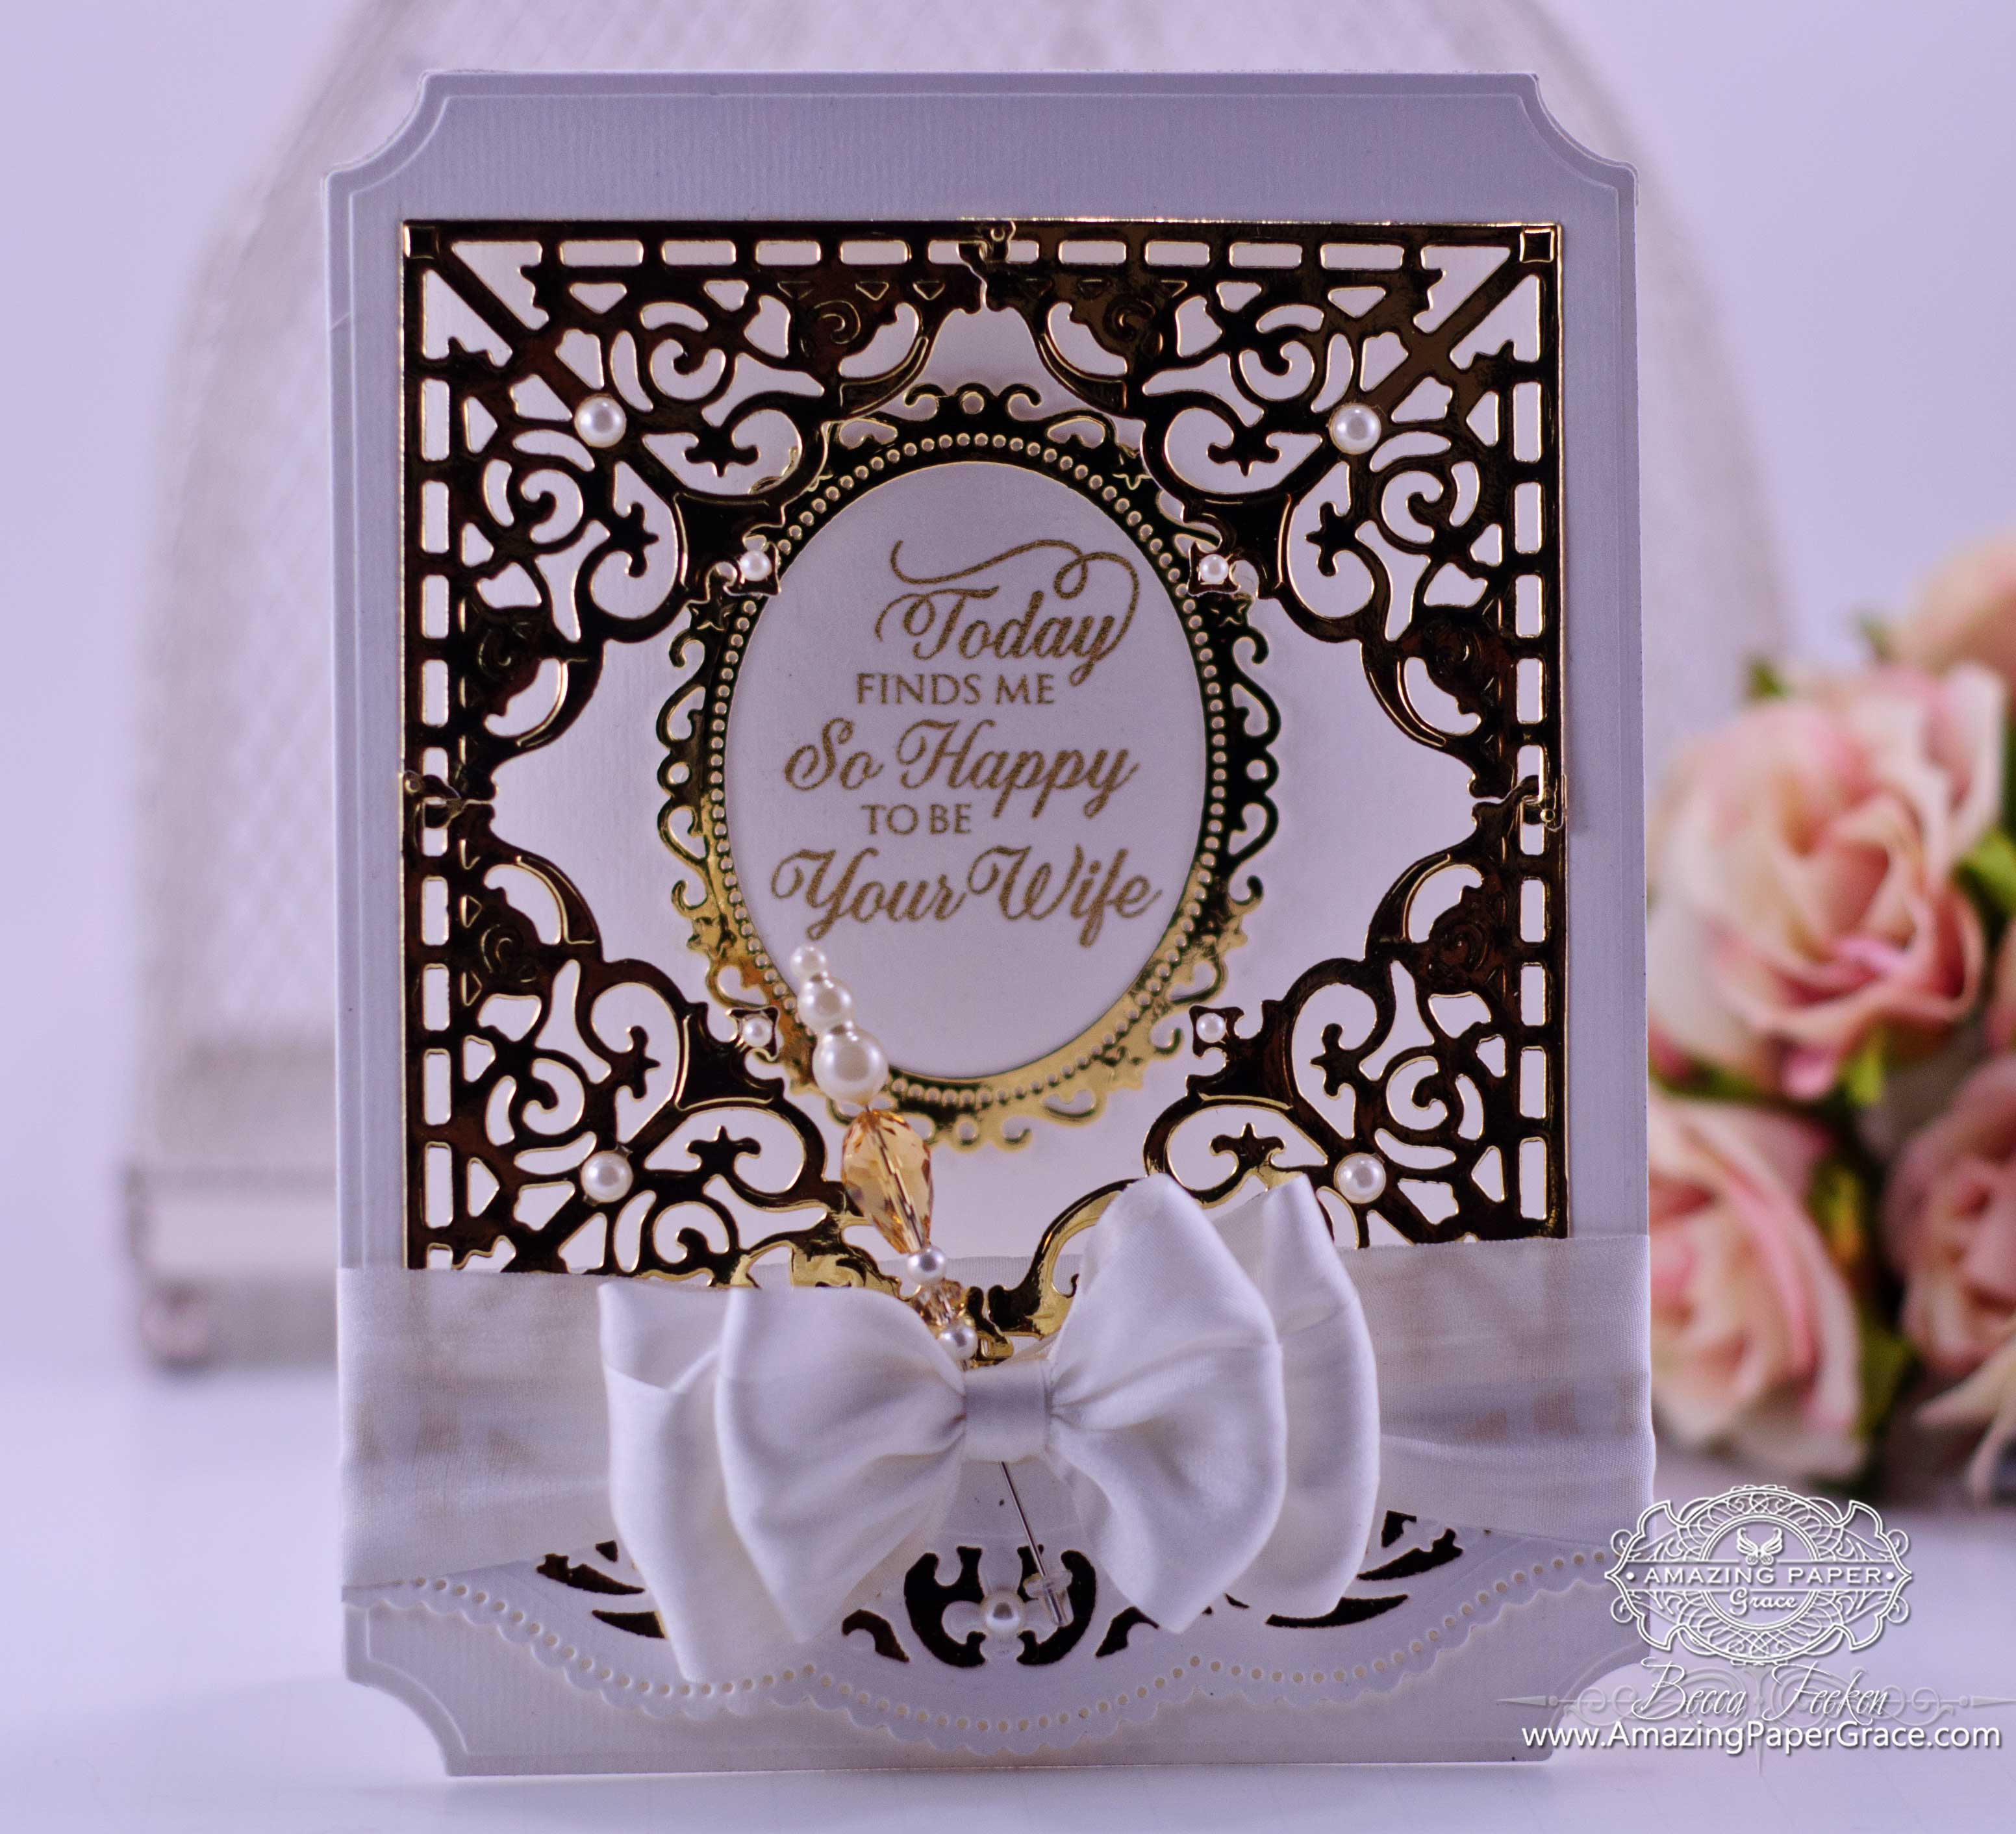 Anniversary and Wedding Invite Card Making Ideas » Amazing Paper Grace